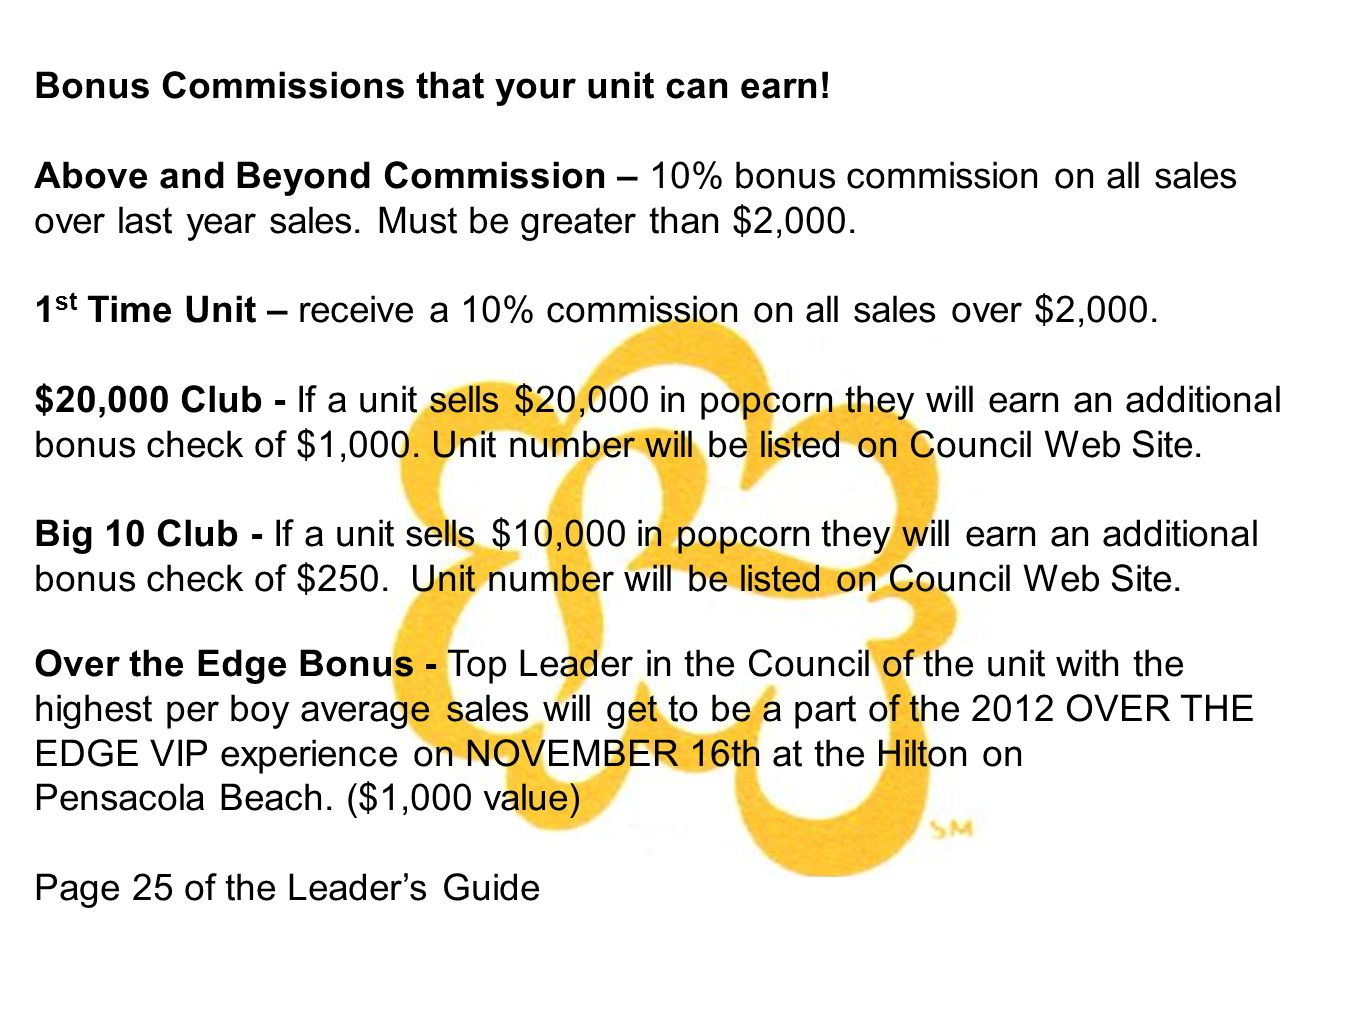 Bonus Commissions that your unit can earn.